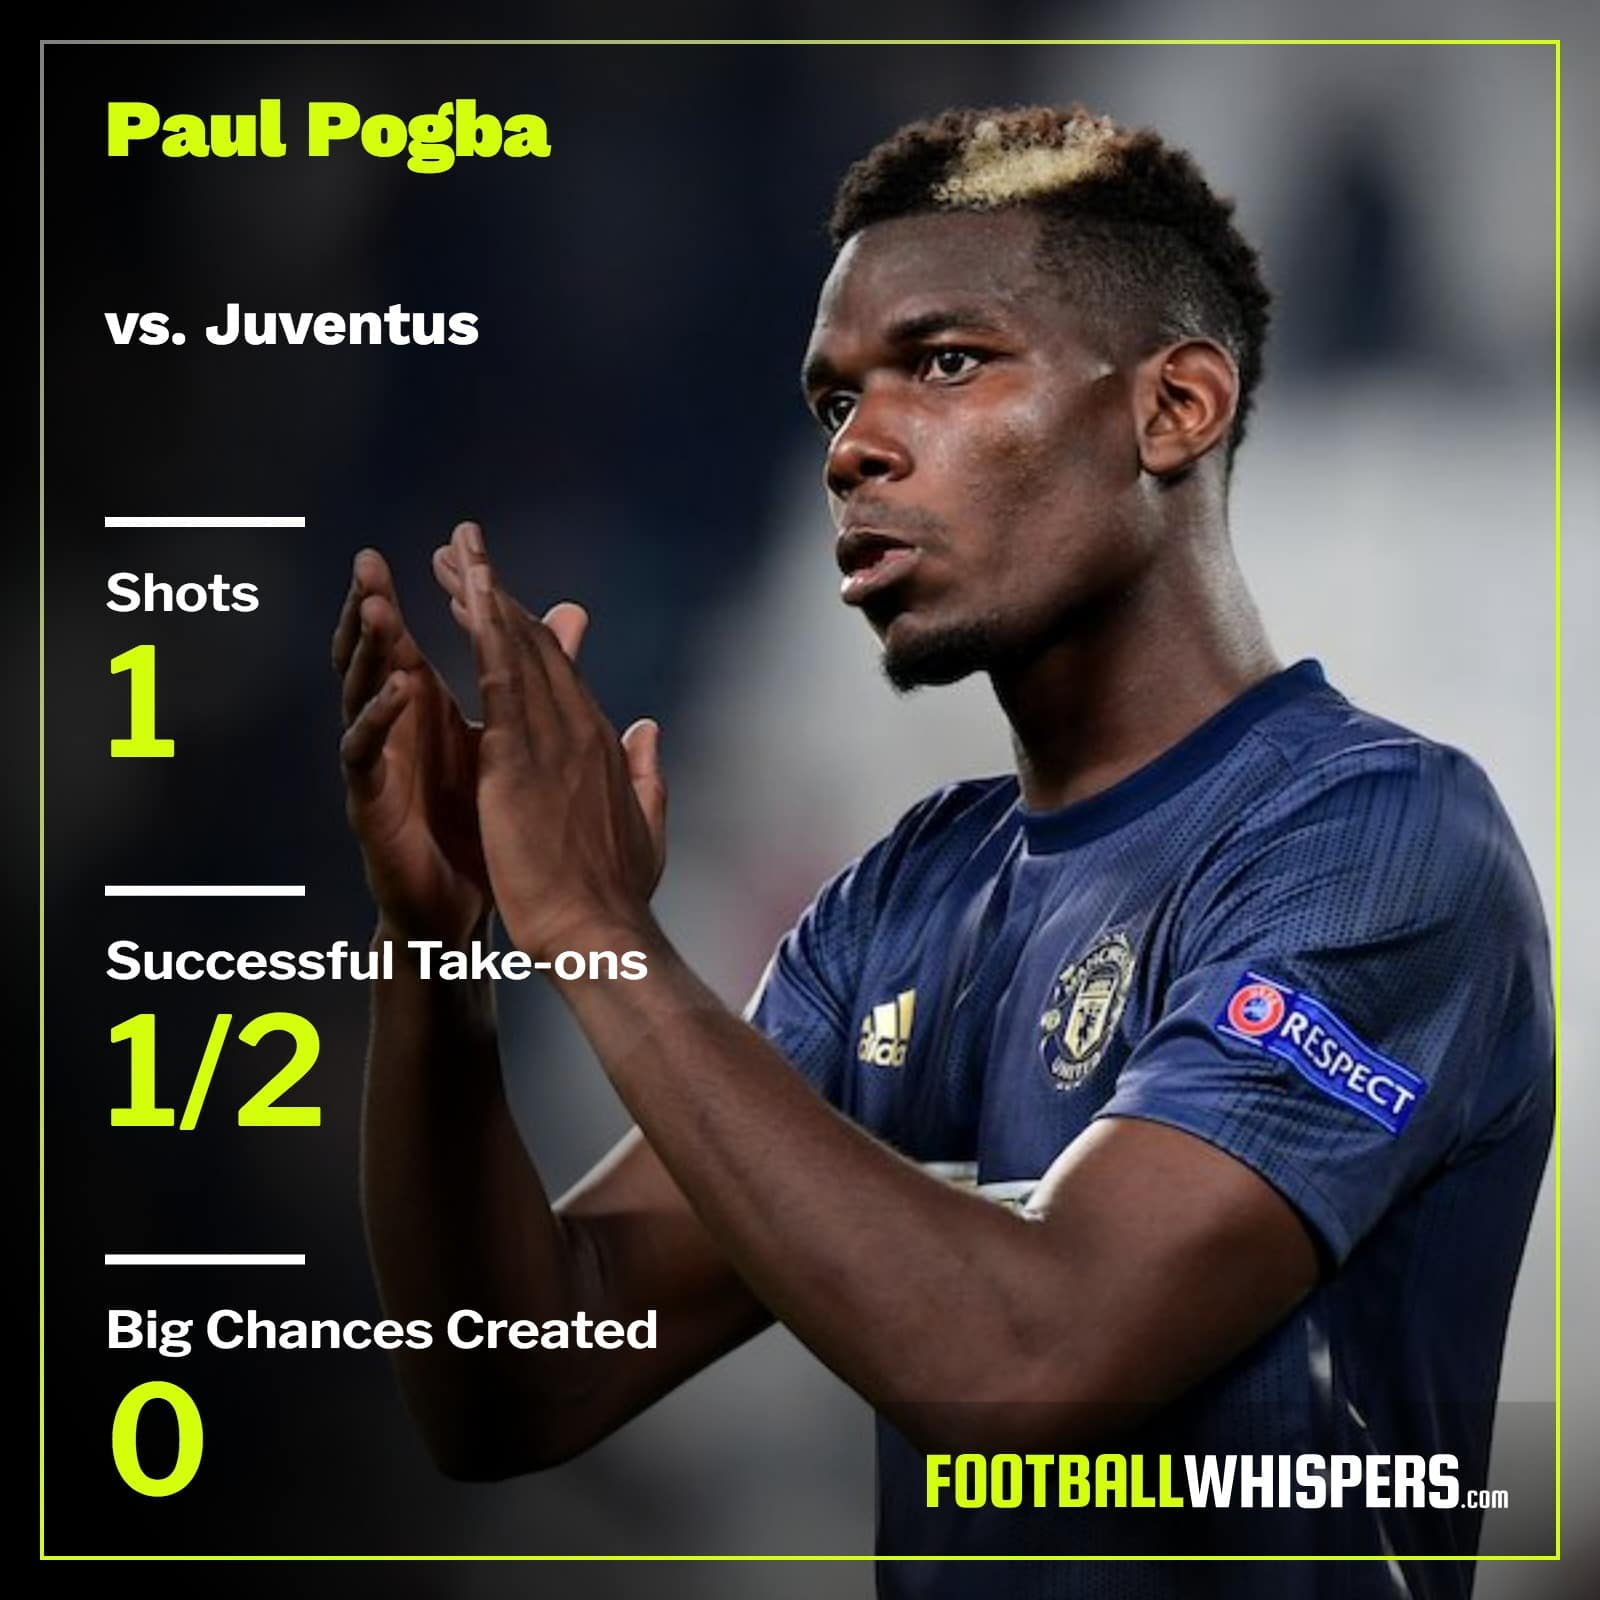 Paul Pogba's stats for Manchester United vs. Juventus